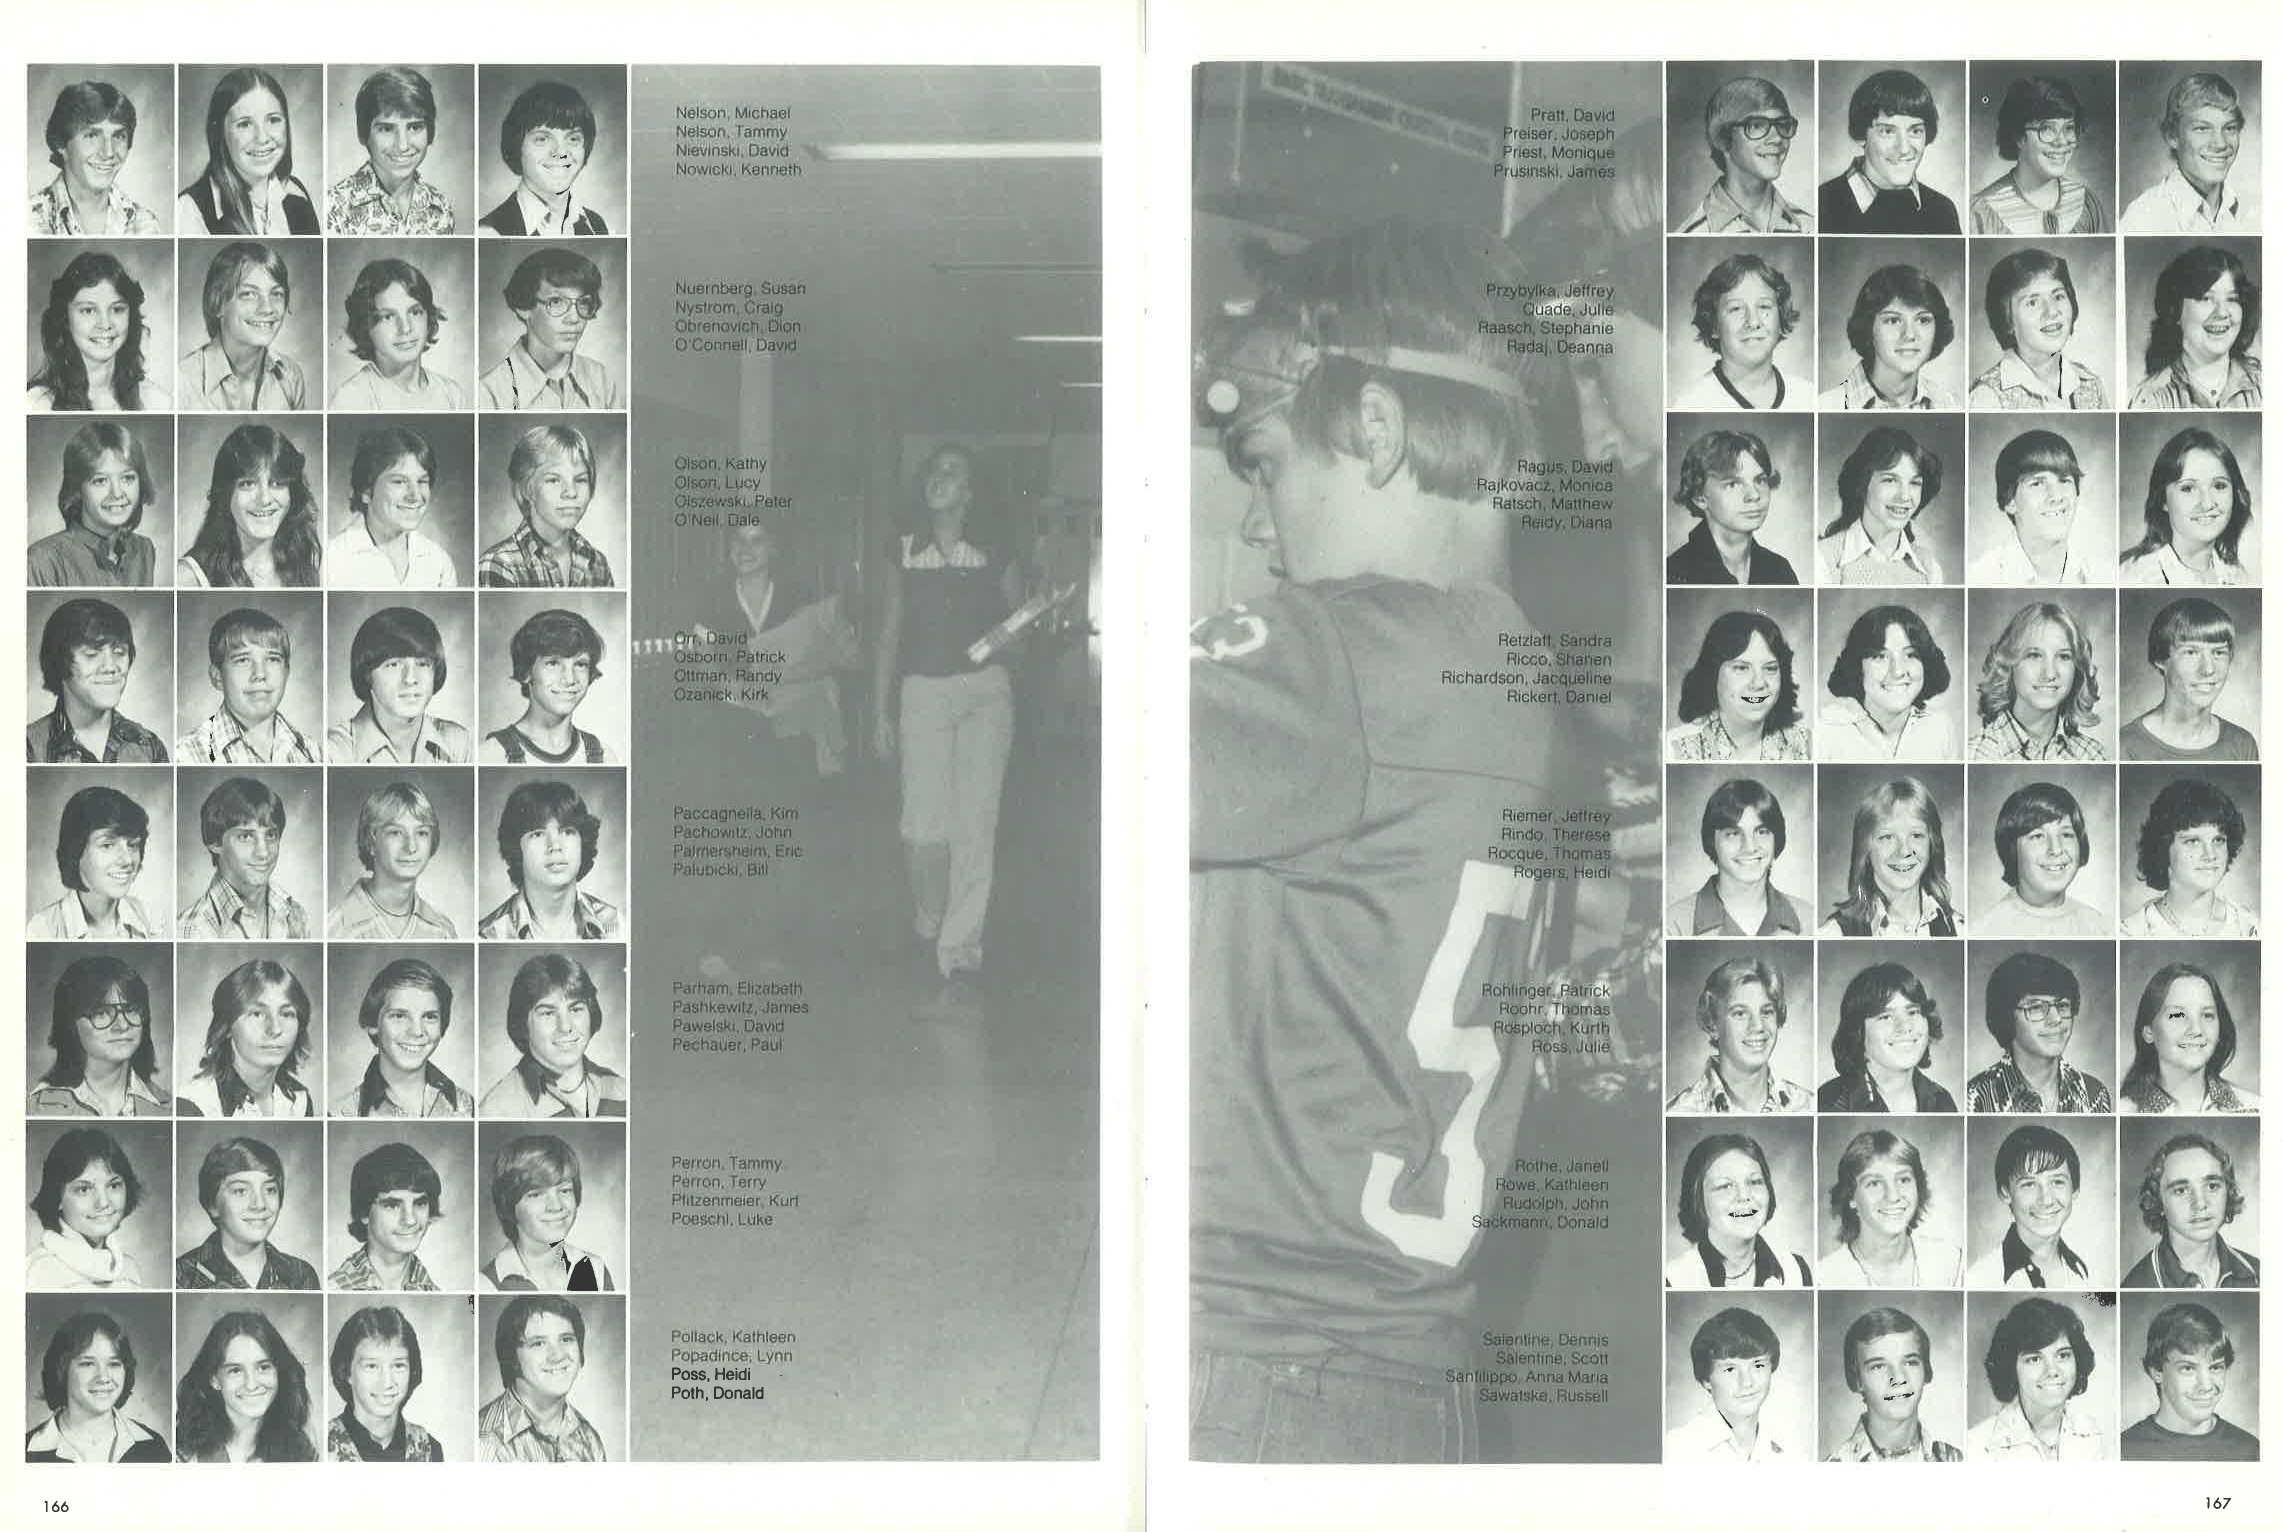 1979_Yearbook_158.jpg